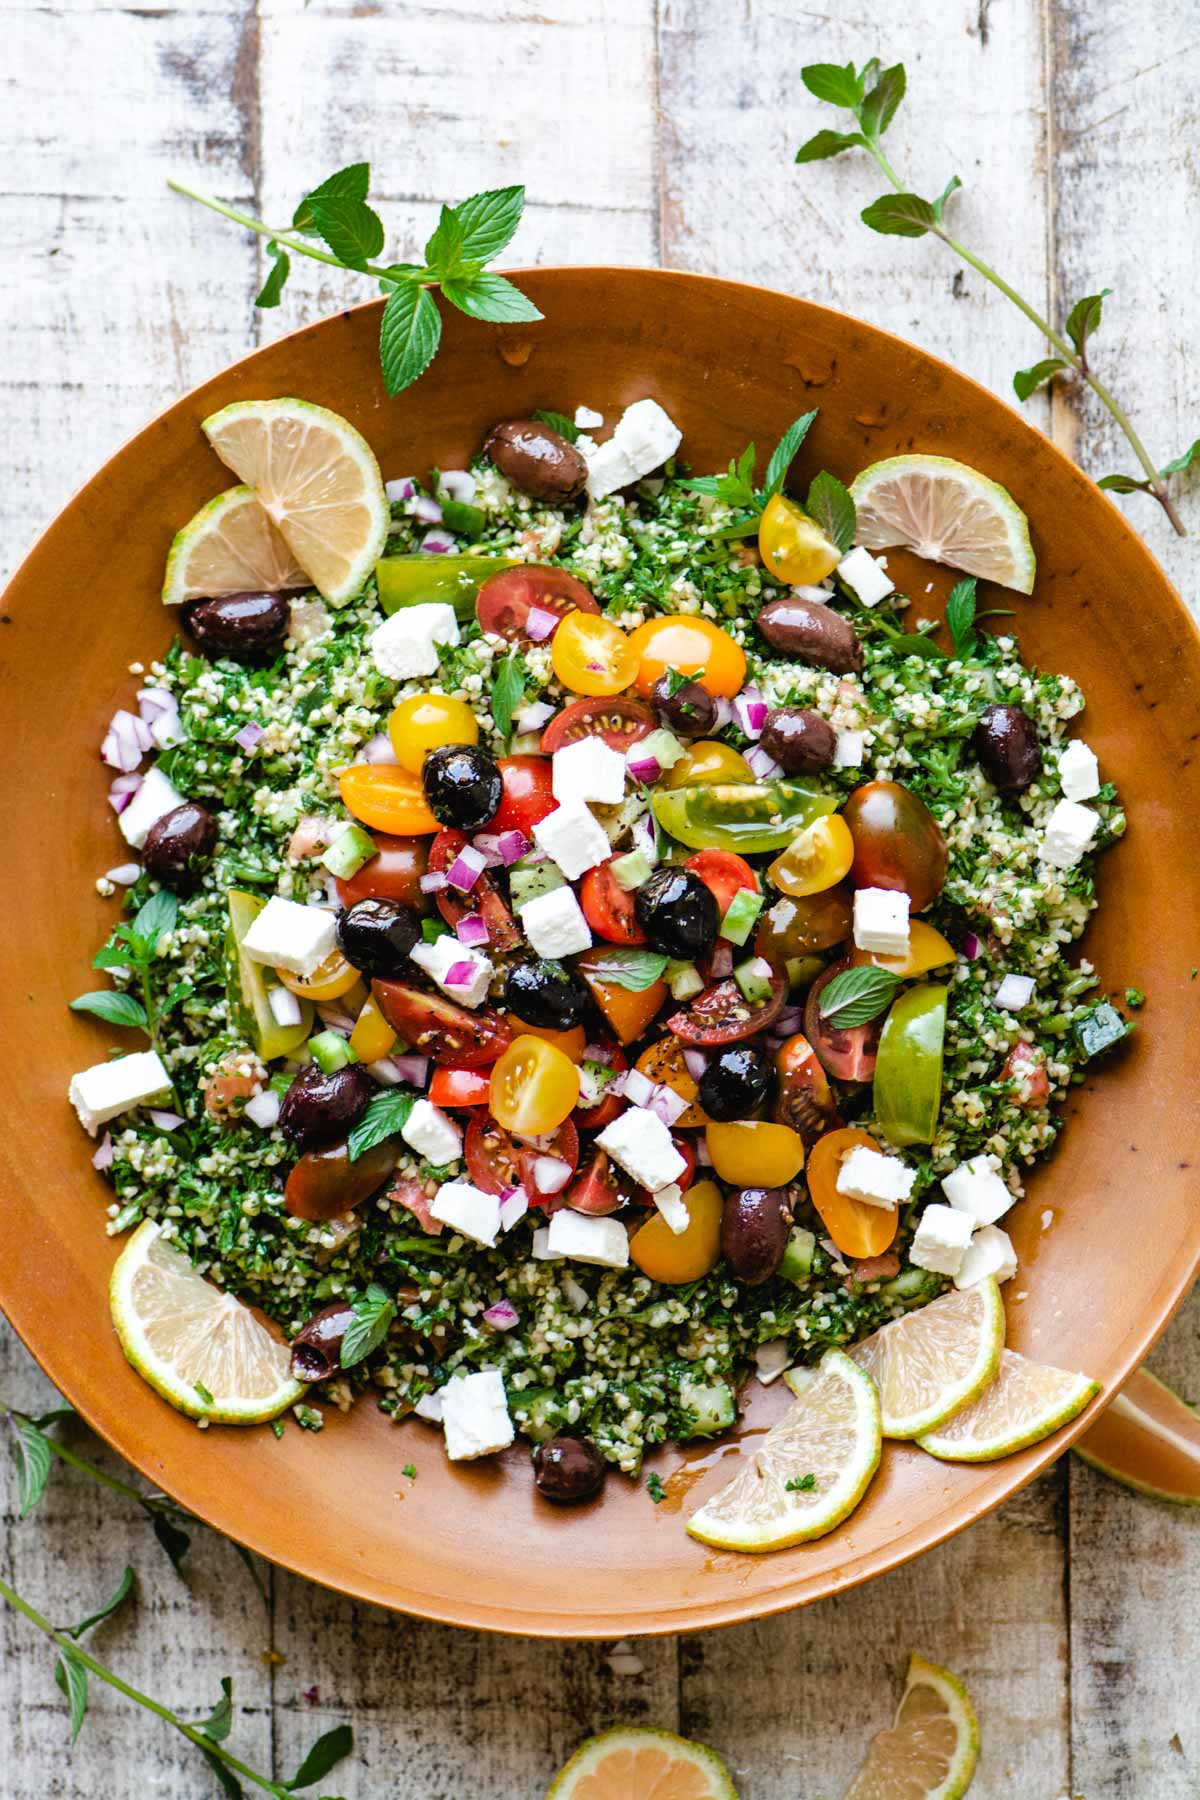 bowl of tabbouleh salad topped with tomatoes, olives, and feta cheese